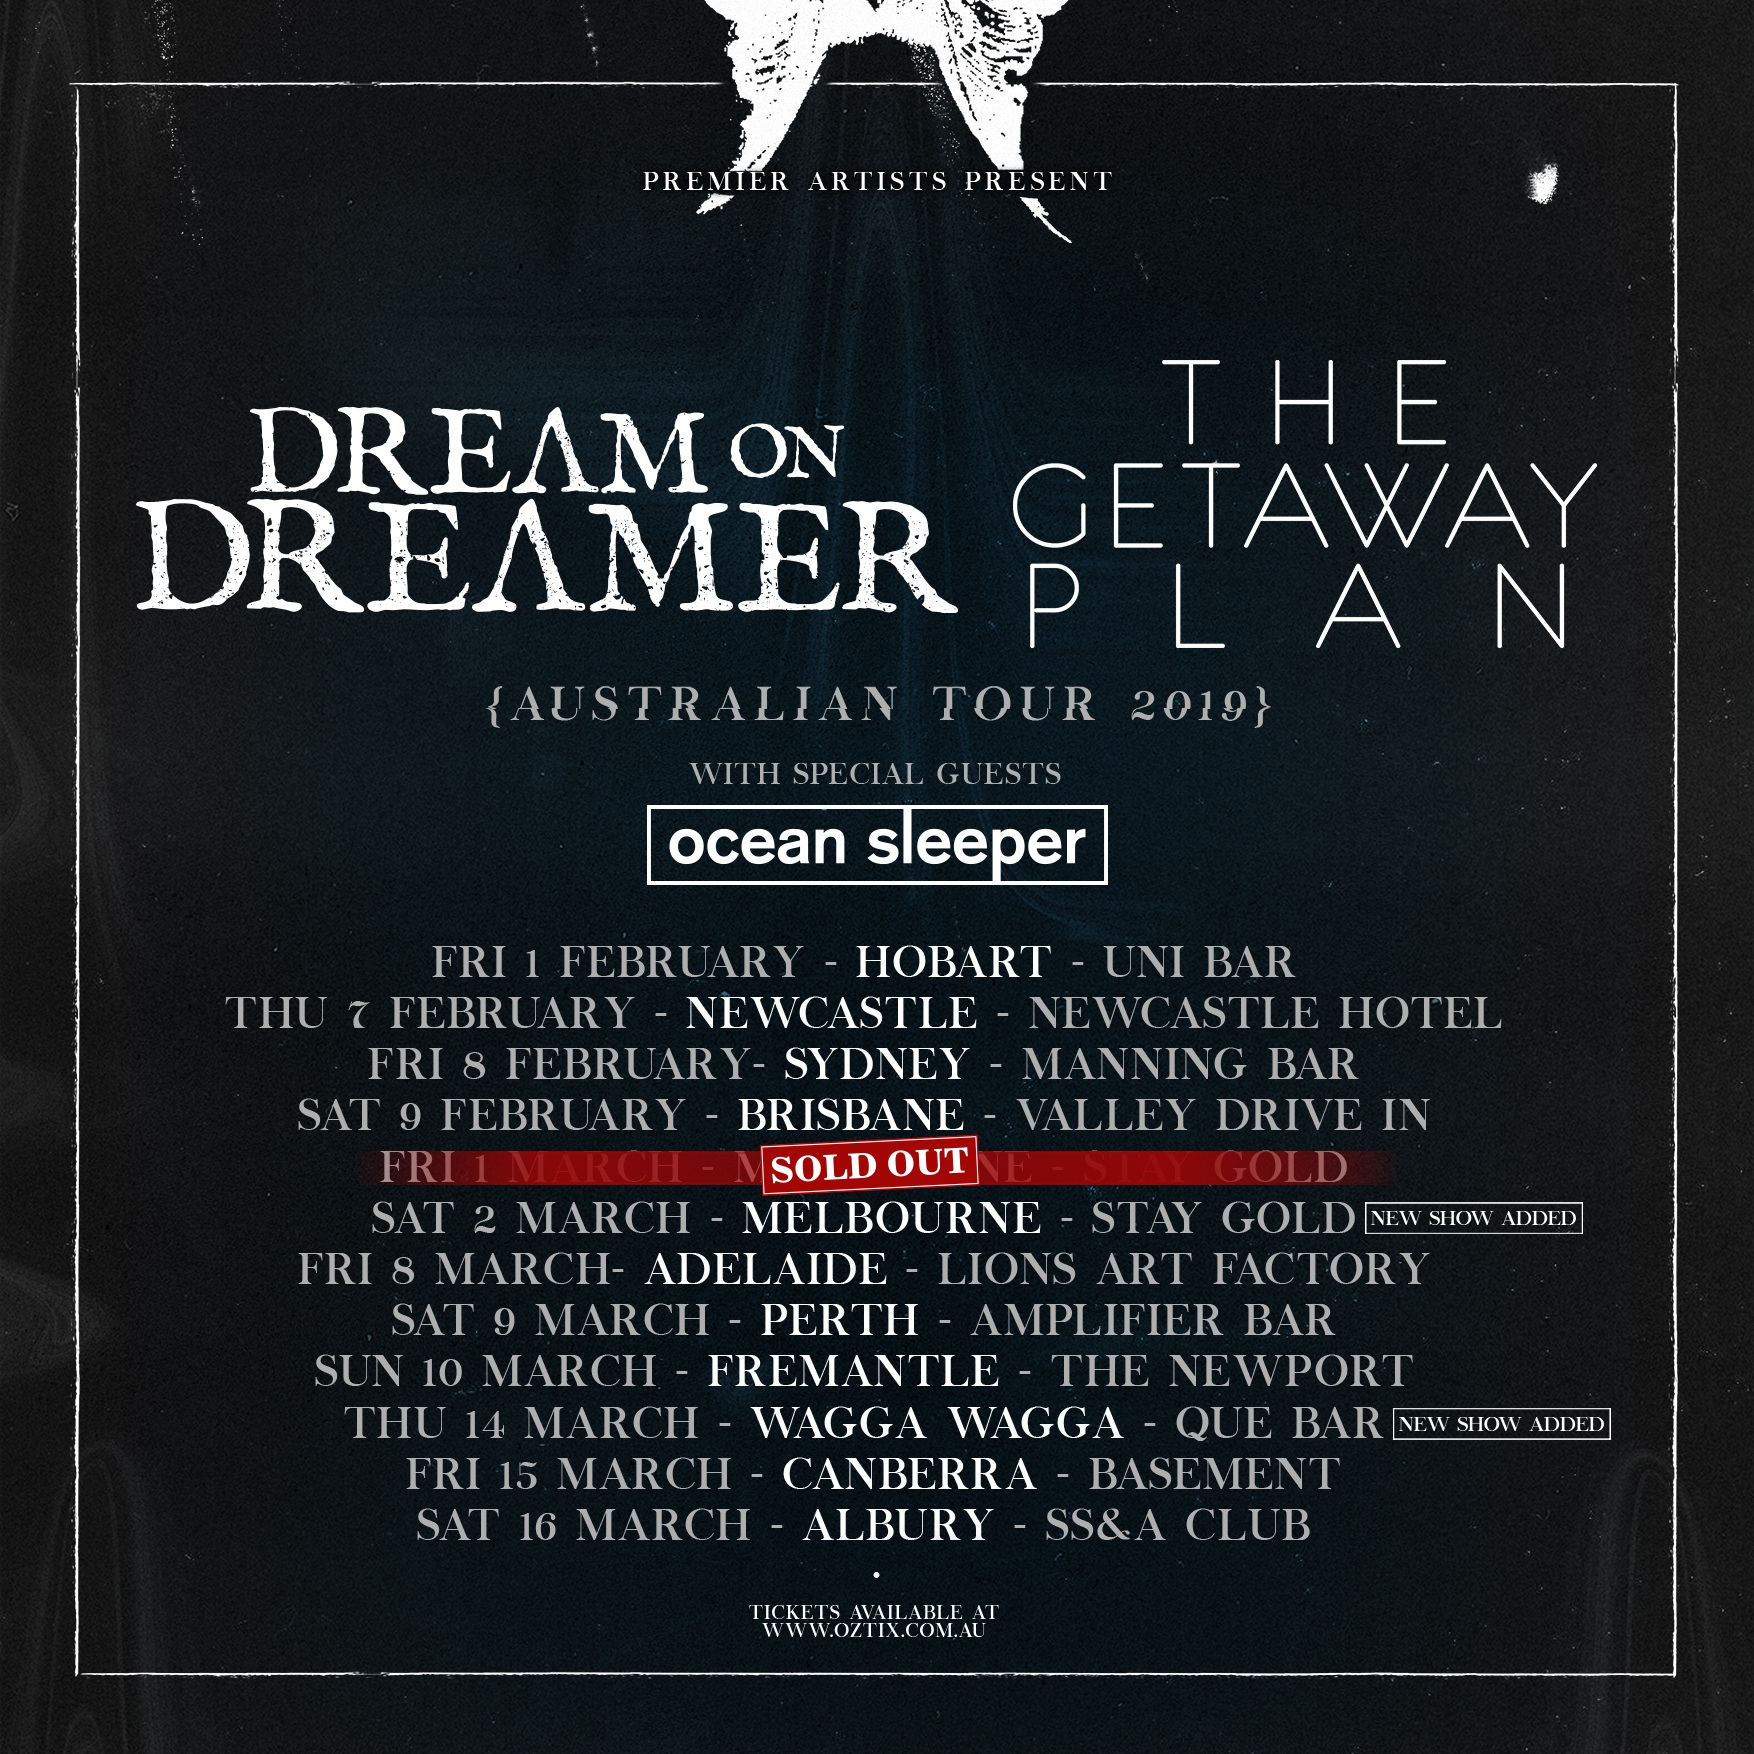 THE GETAWAY PLAN & DREAM ON DREAMER, SYDNEY 08/02/2019 -  VOICES WITHIN THE SHADOWS!